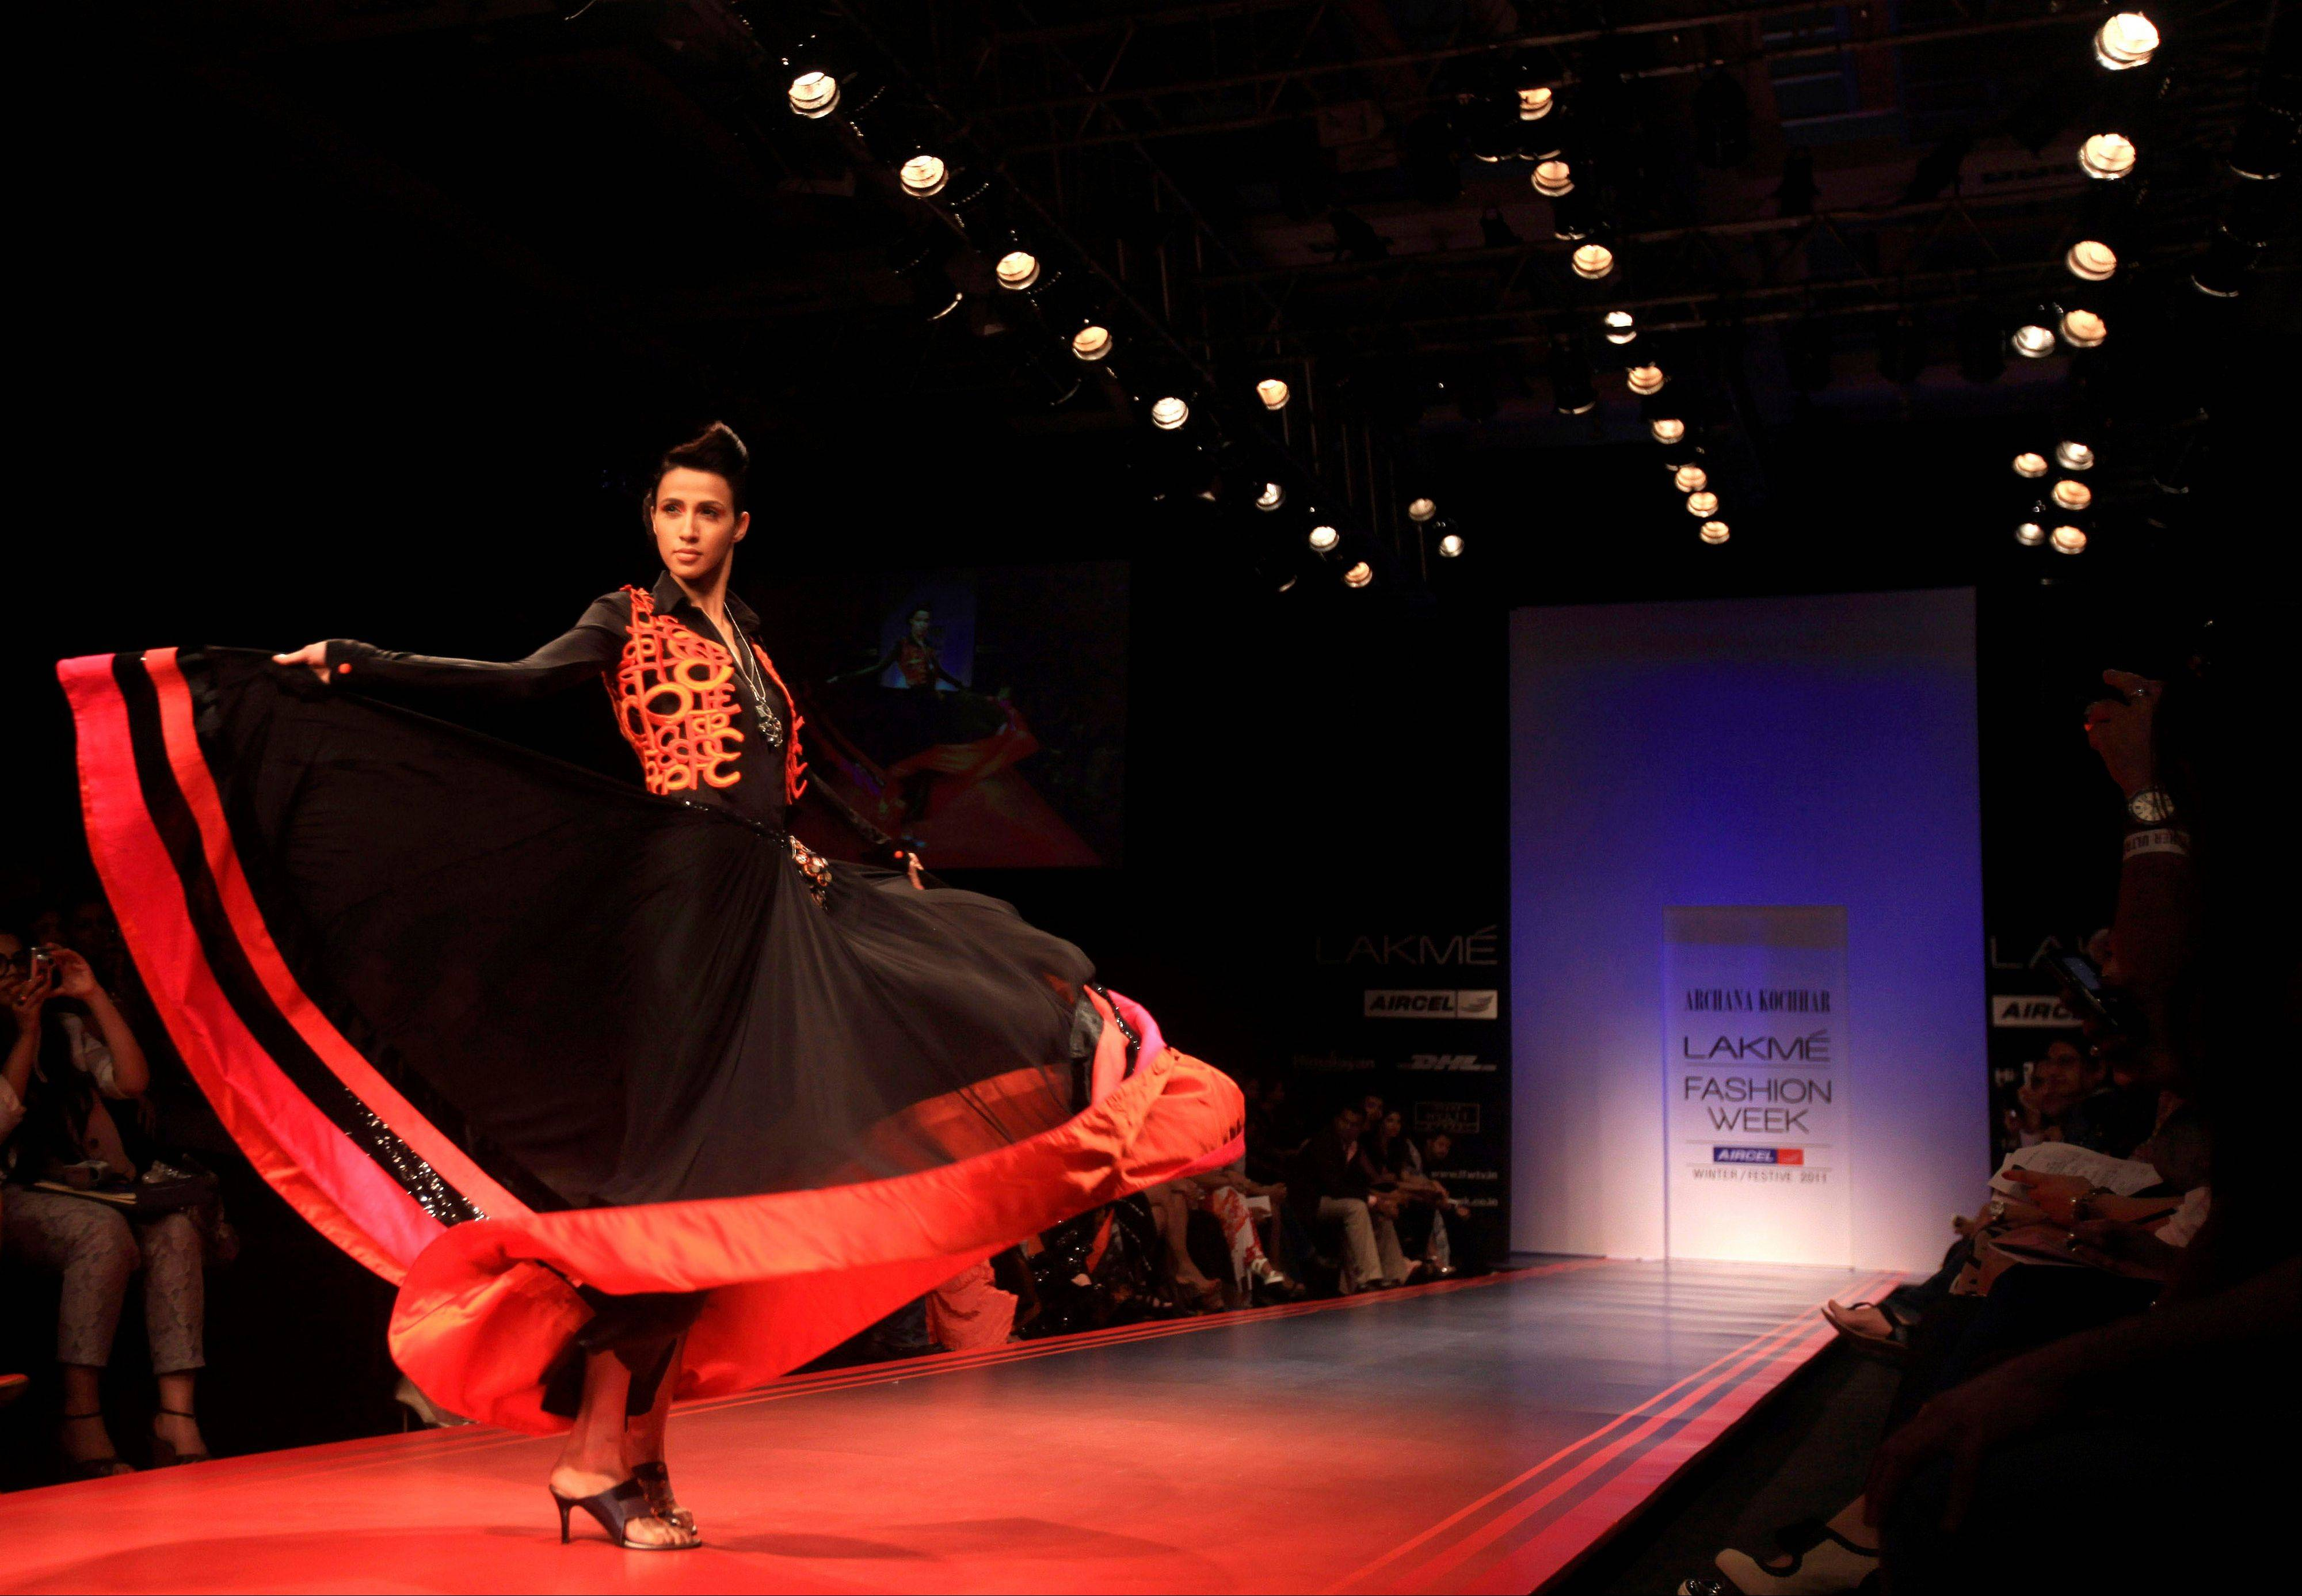 An Indian model displays a creation by designer Archana Kochhar during Lakme Fashion Week in Mumbai, India.